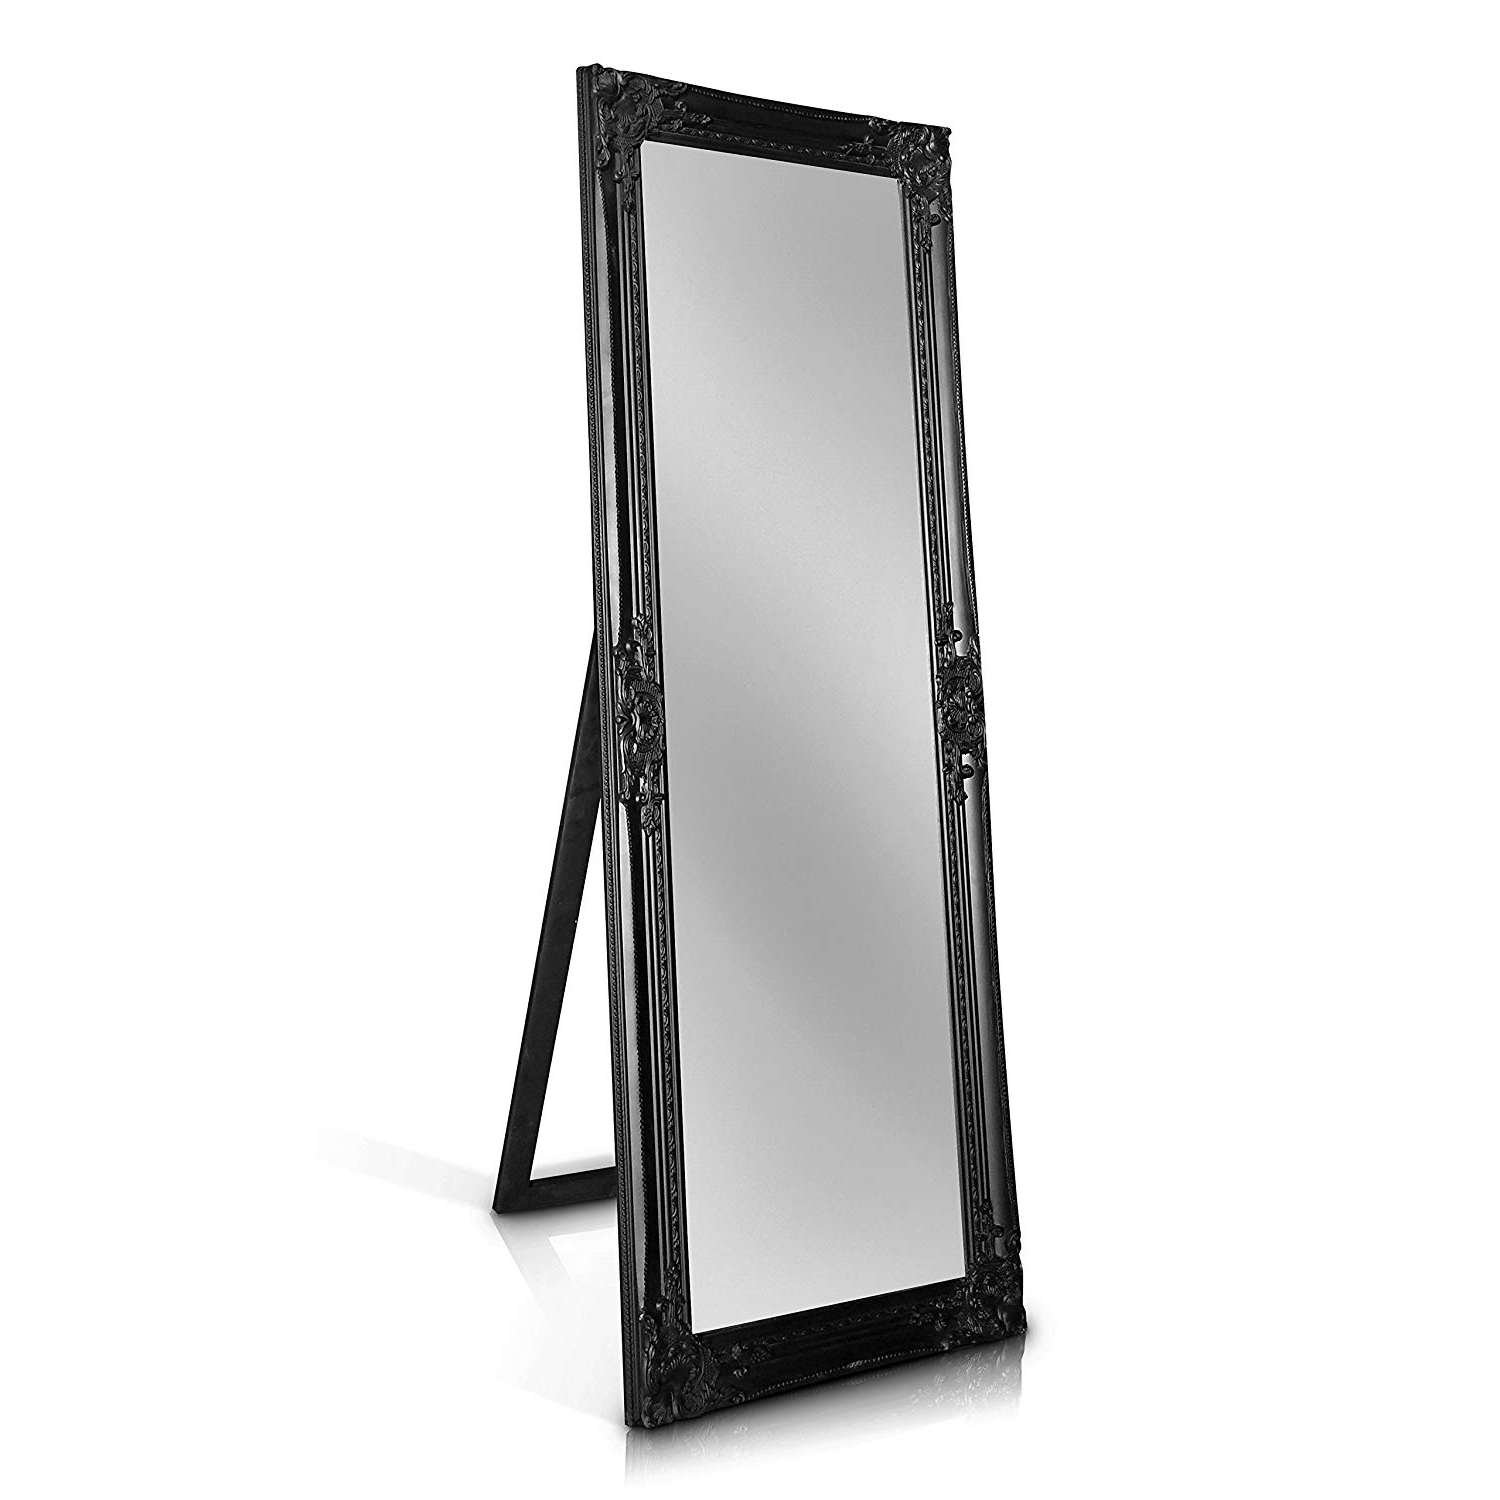 Rocococasa Chic – Shabby Chic Wall Mirror – 130X45 Cm  Solid Wood –  Large French Vintage Style Full Length Standing Mirror – Antique Black For Favorite Shabby Chic Wall Mirrors (View 13 of 20)